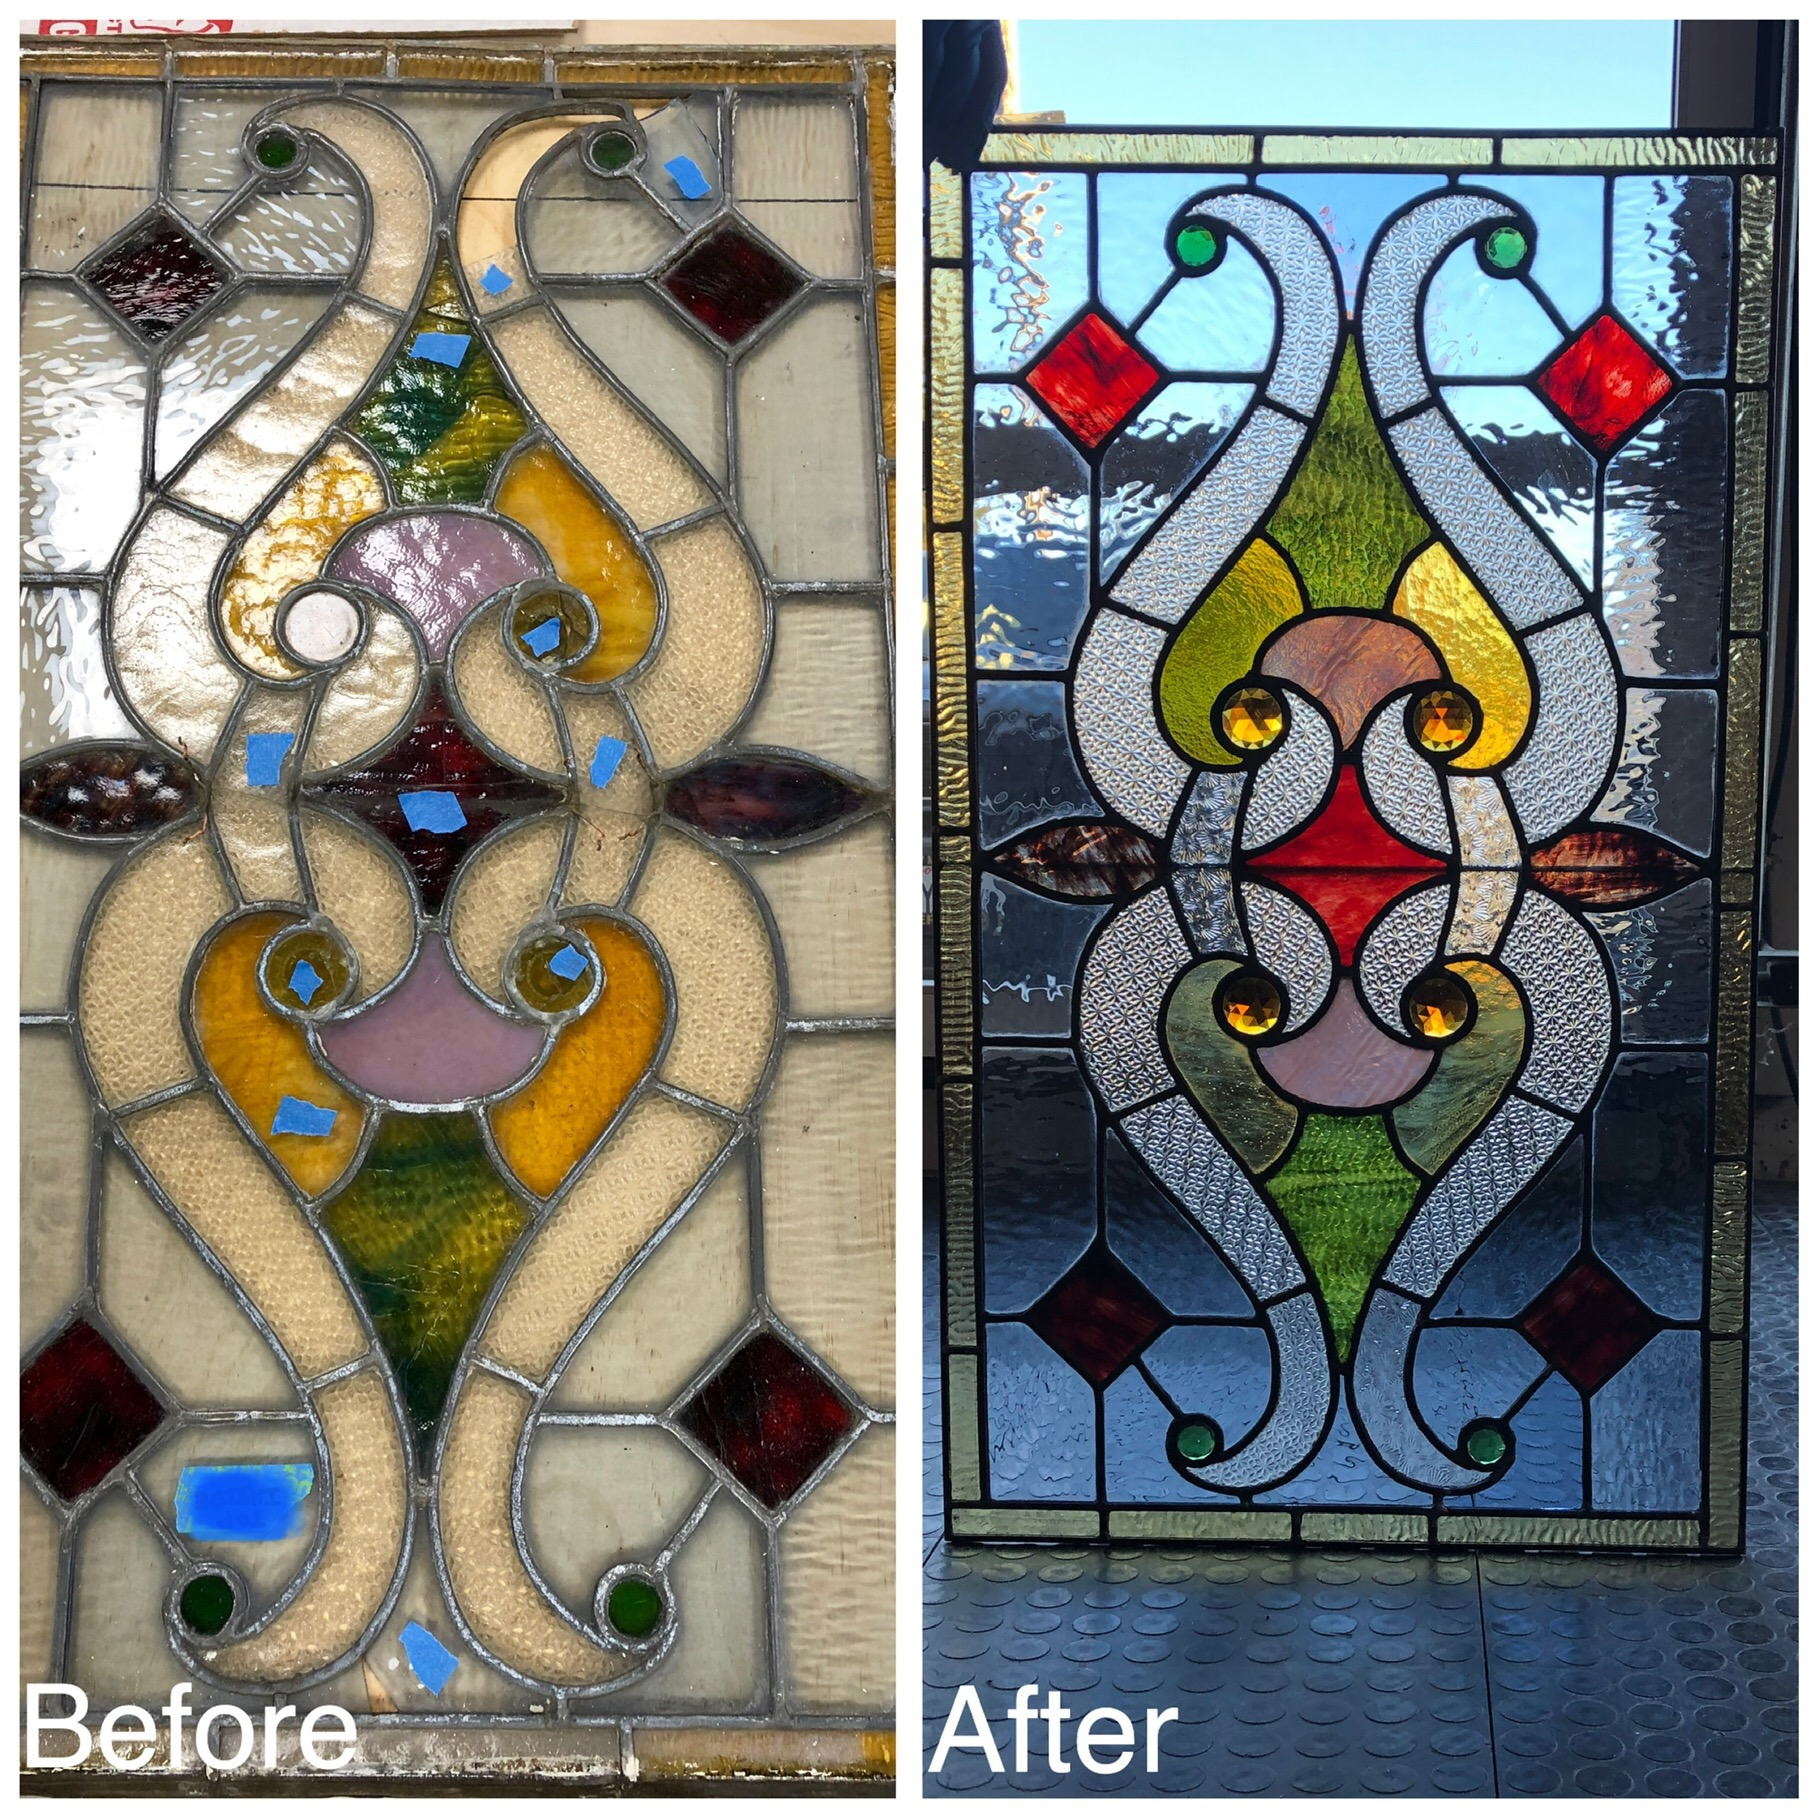 stained glass art glass bay area legacy glass studios antique glass old repair jewels red green yellow clear texture before after front door ripple blue translucent.jpg